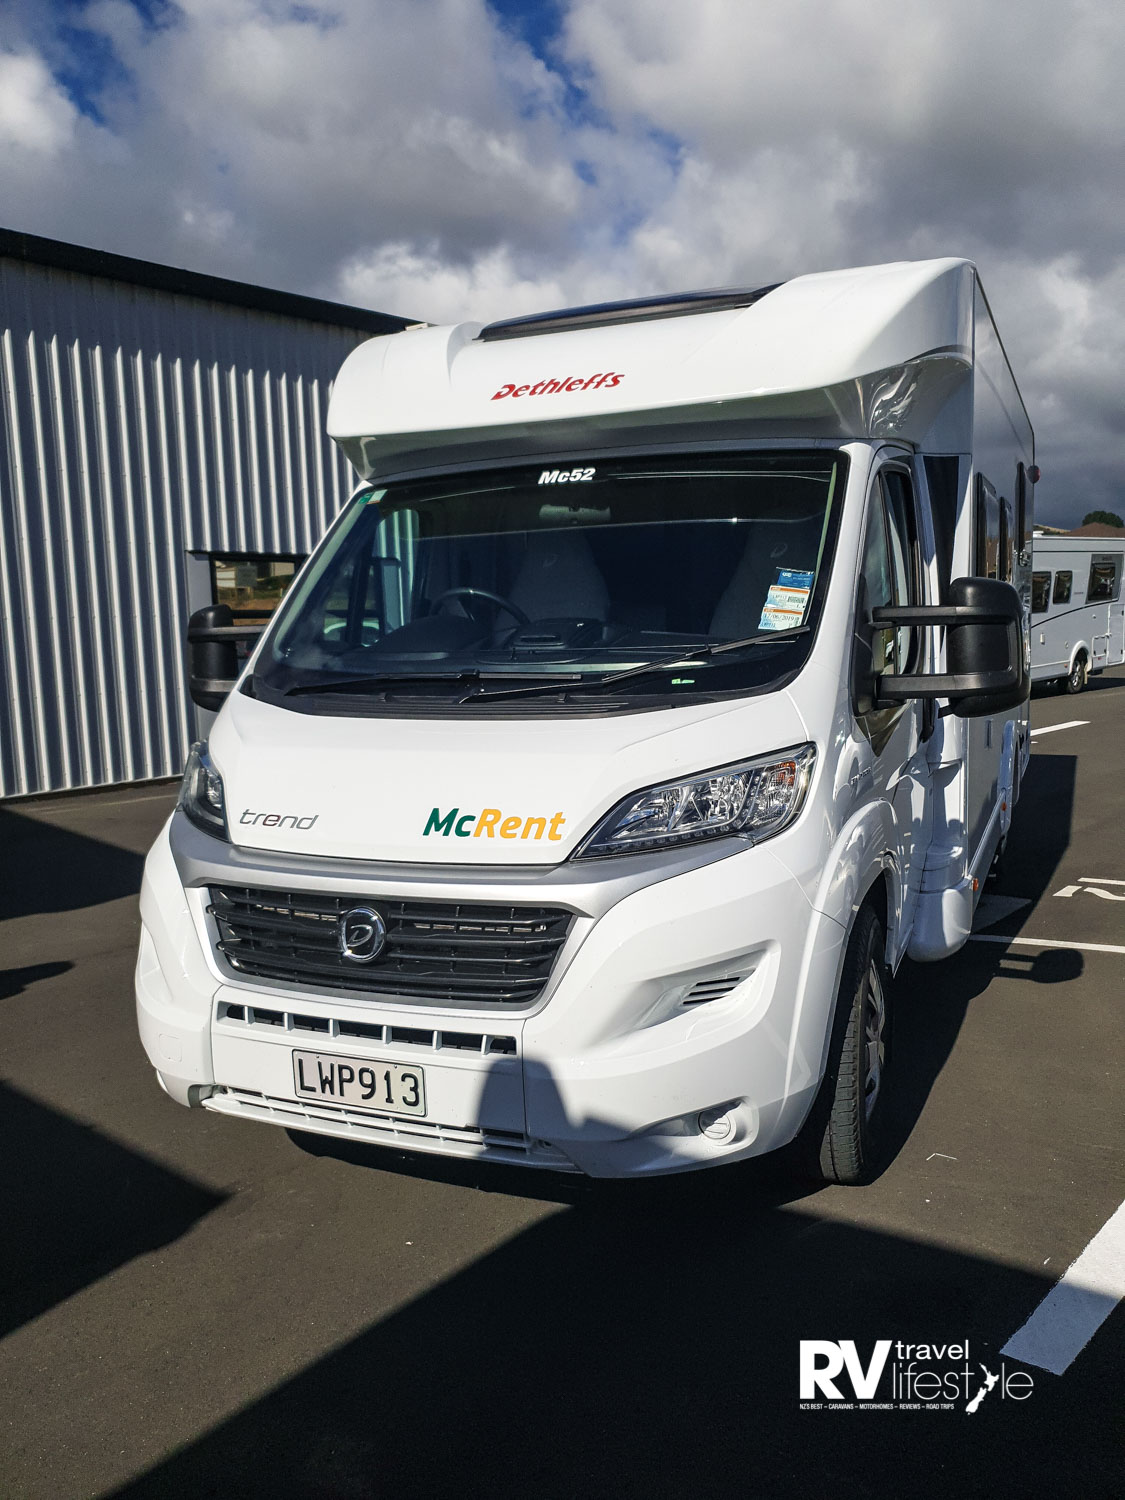 Low-line Dethleffs Trend Distinction range all based on the Fiat Ducato 96KW (130BHP) cab chassis